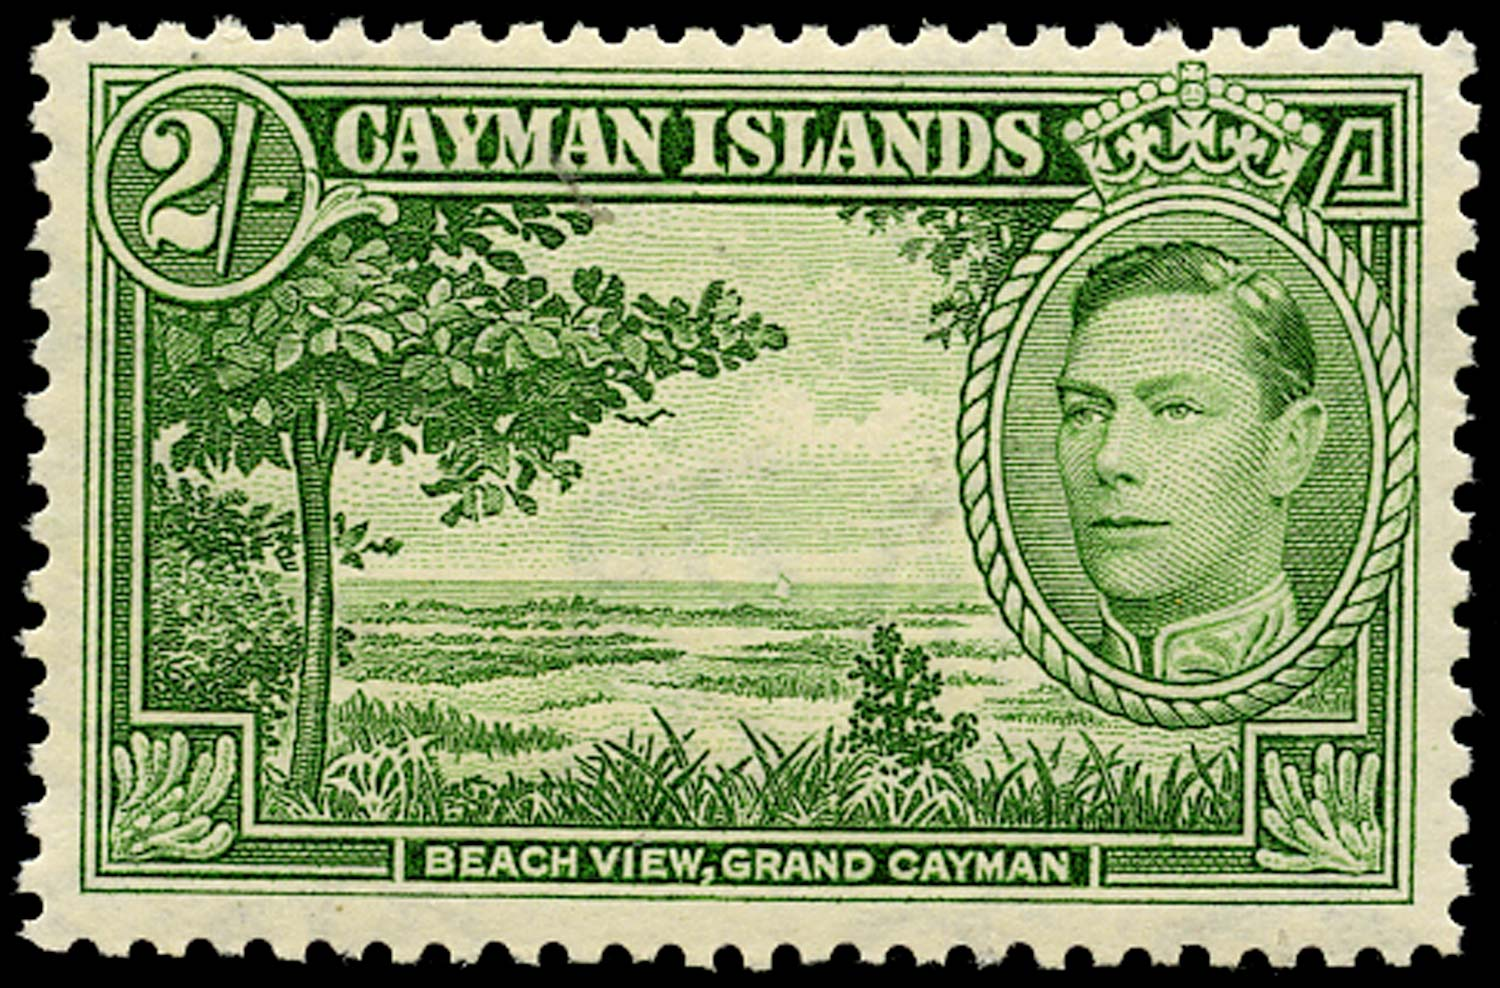 CAYMAN ISLANDS 1938  SG124 Mint 2s yellow-green unmounted